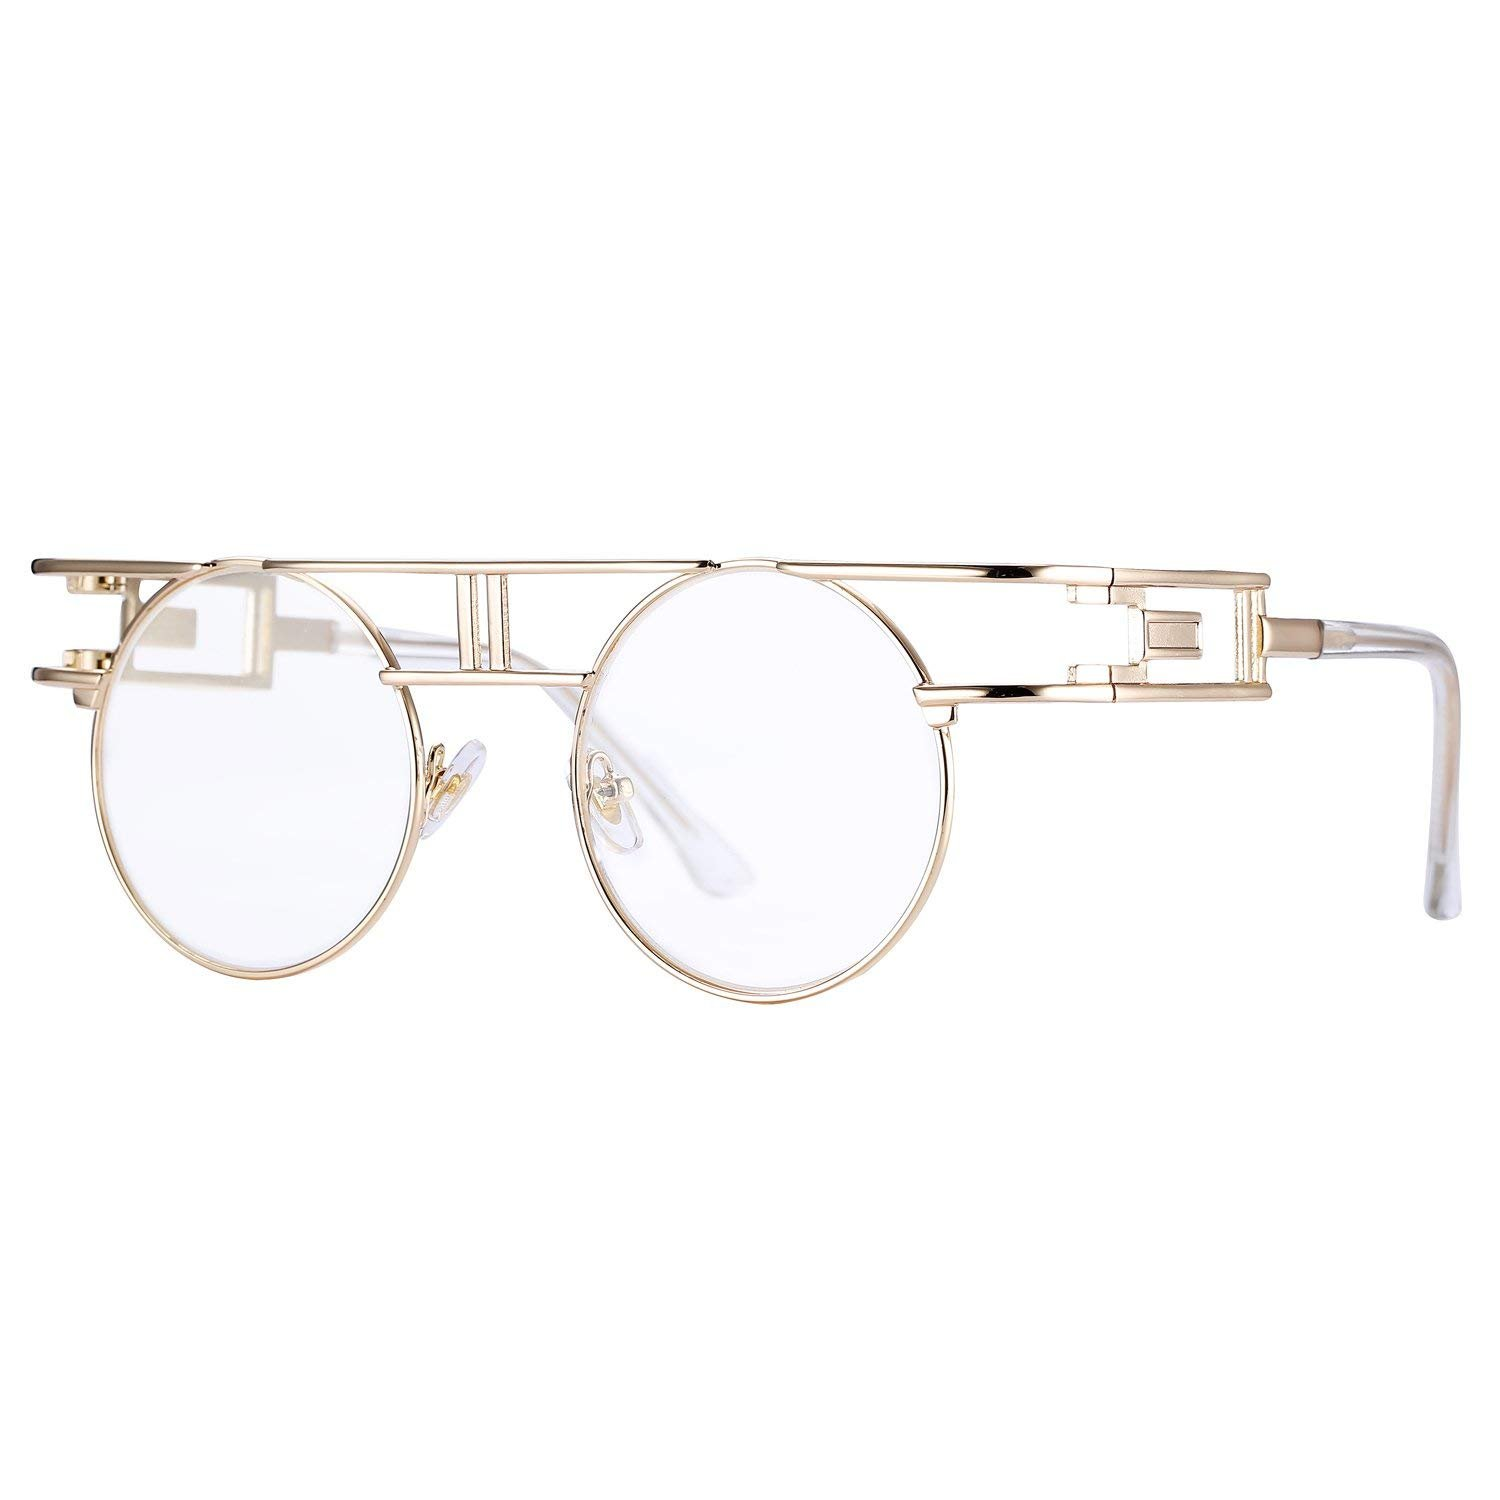 HUA JU Vintage John Lennon Style Metal Spring Frame Round Steampunk Glasses with Clear Lens (Gold Double Bridge-Clear Lens/Lens Width 47mm, 47)